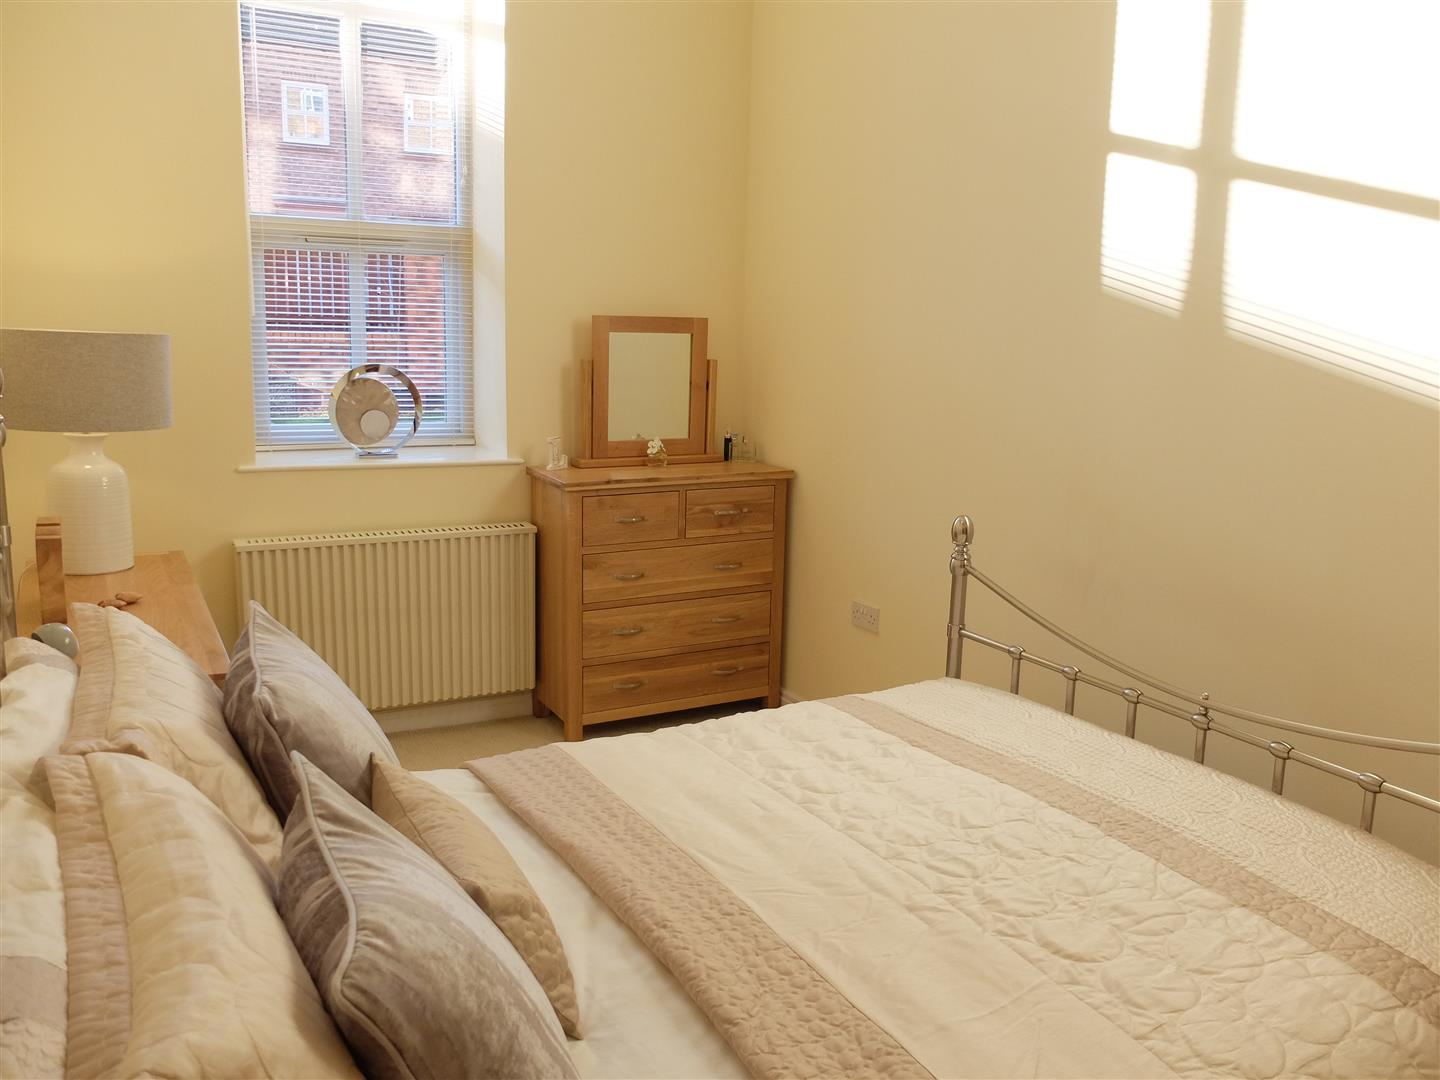 Flat 12, Waterside House Denton Mill Close Carlisle 1 Bedroom Flat For Sale 79,995